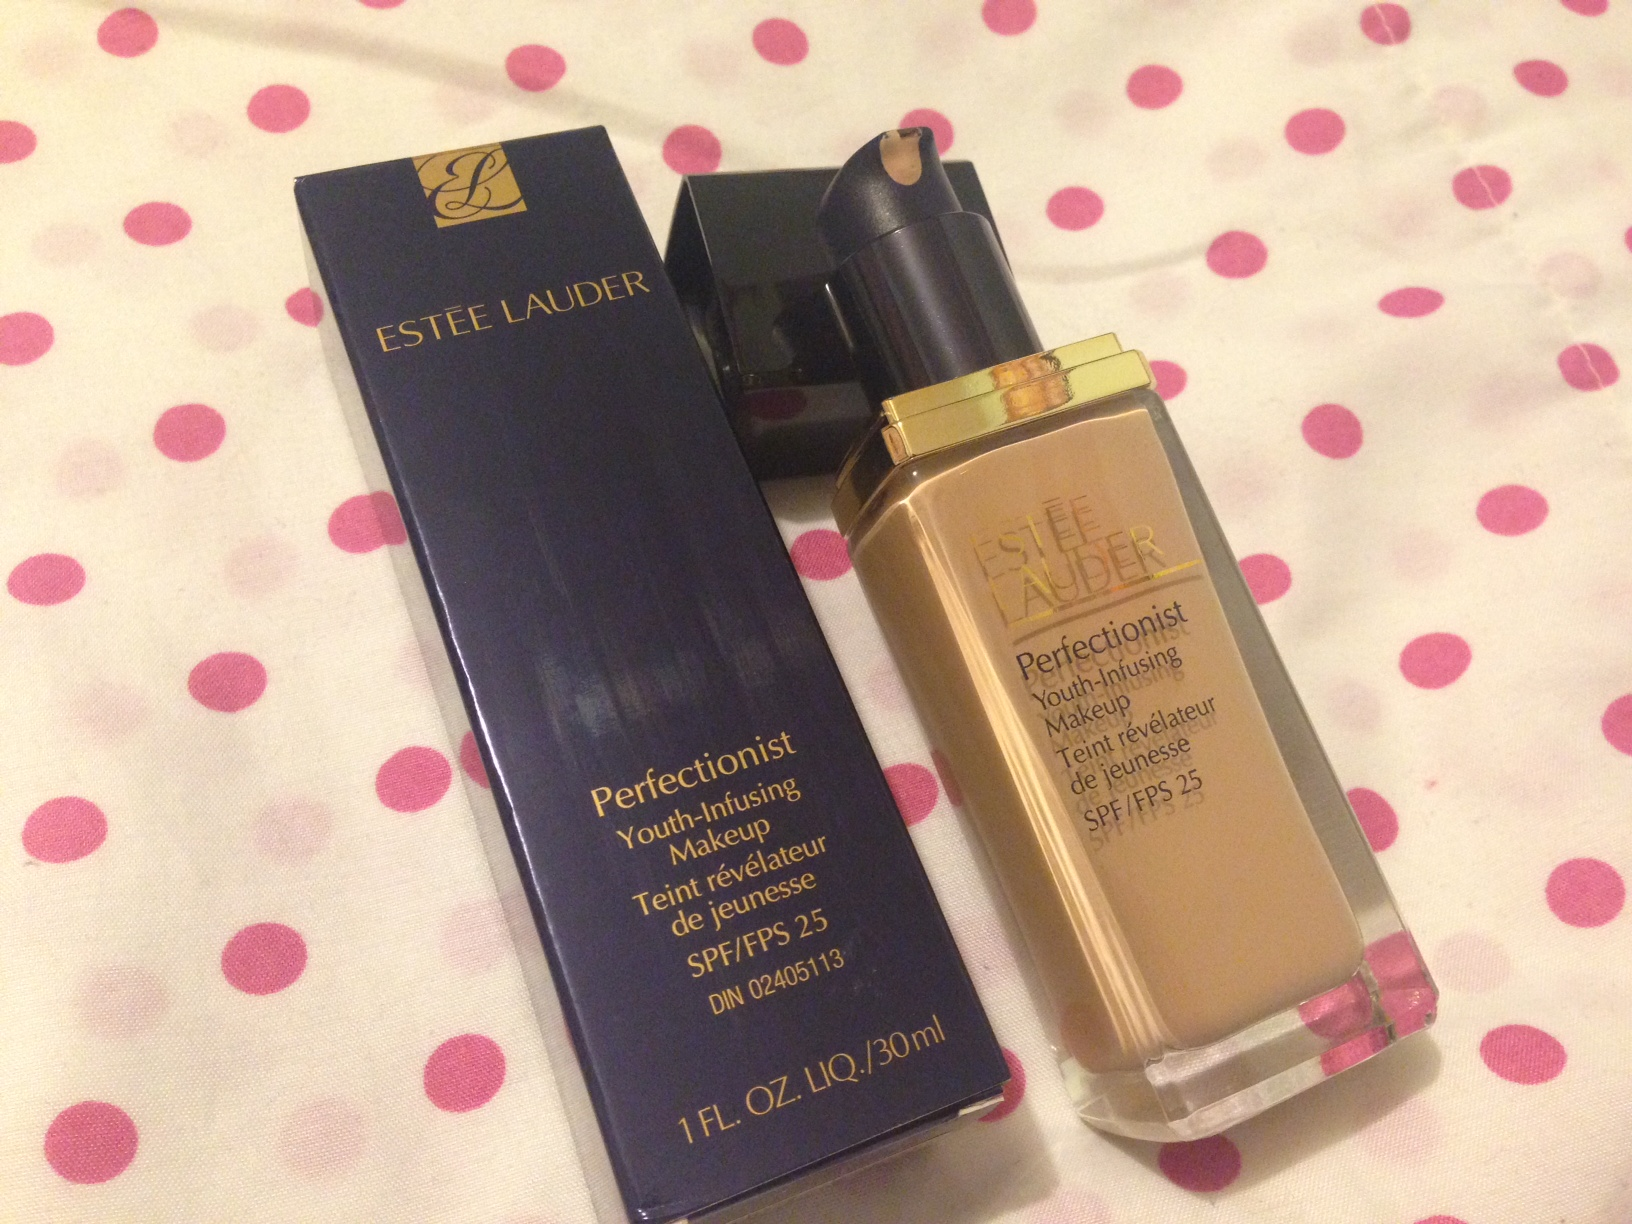 Estee Lauder Perfectionist Foundation Review - Curiously Carmen